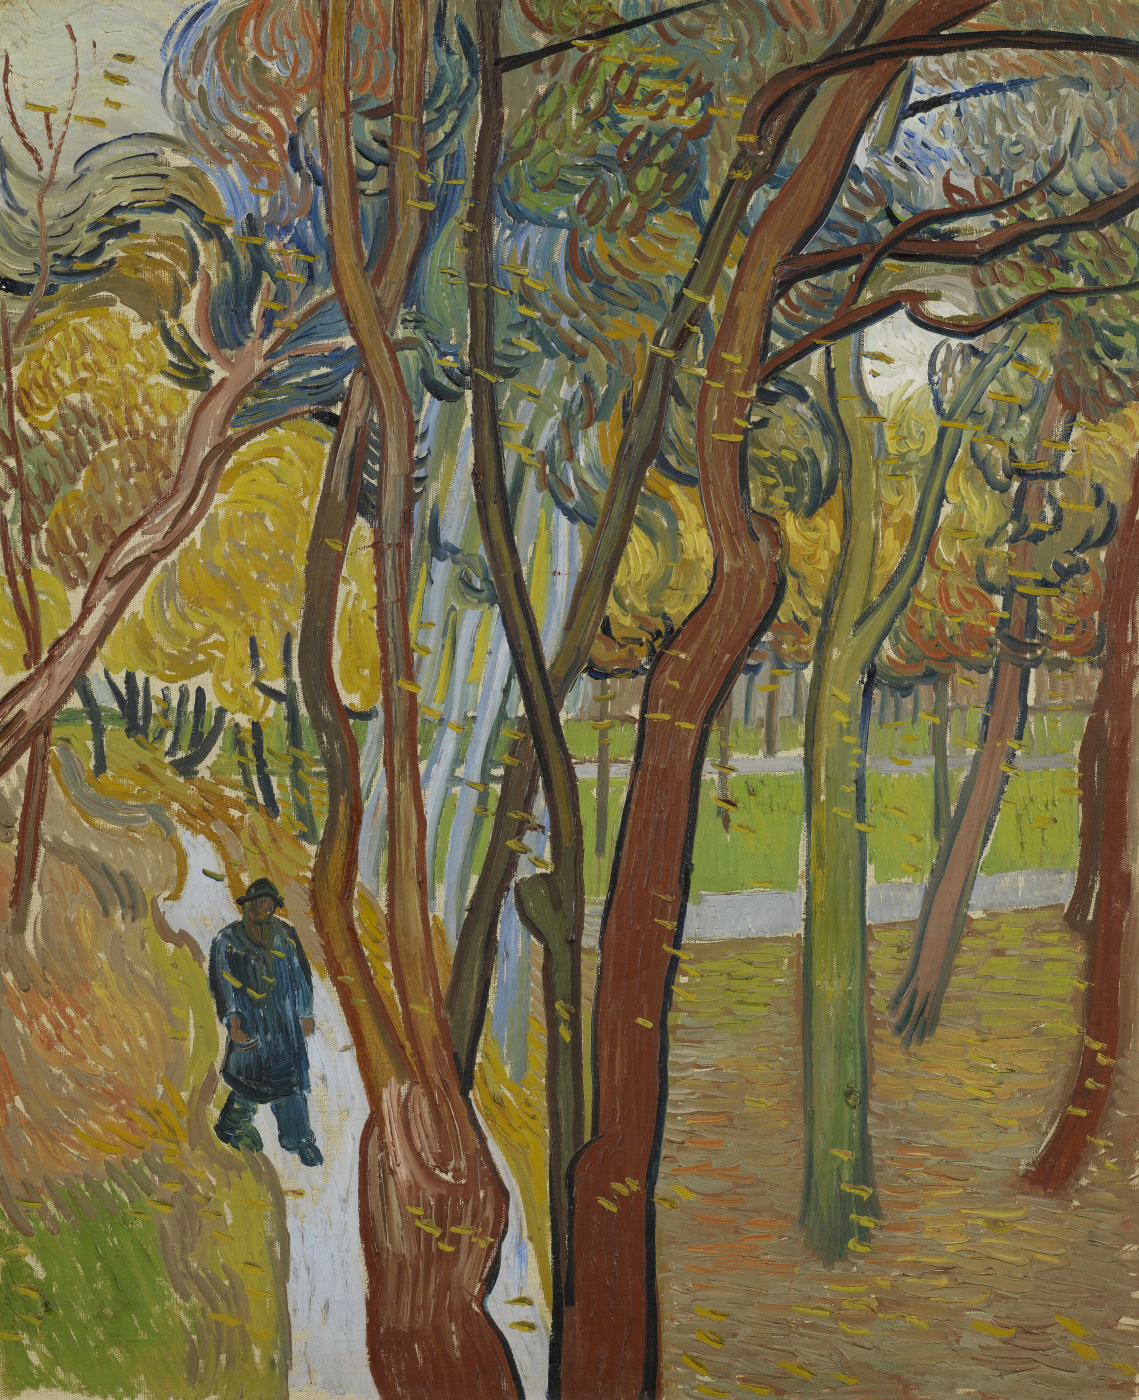 Vincent van Gogh. The leaf fall. Park hospital St. Paul's